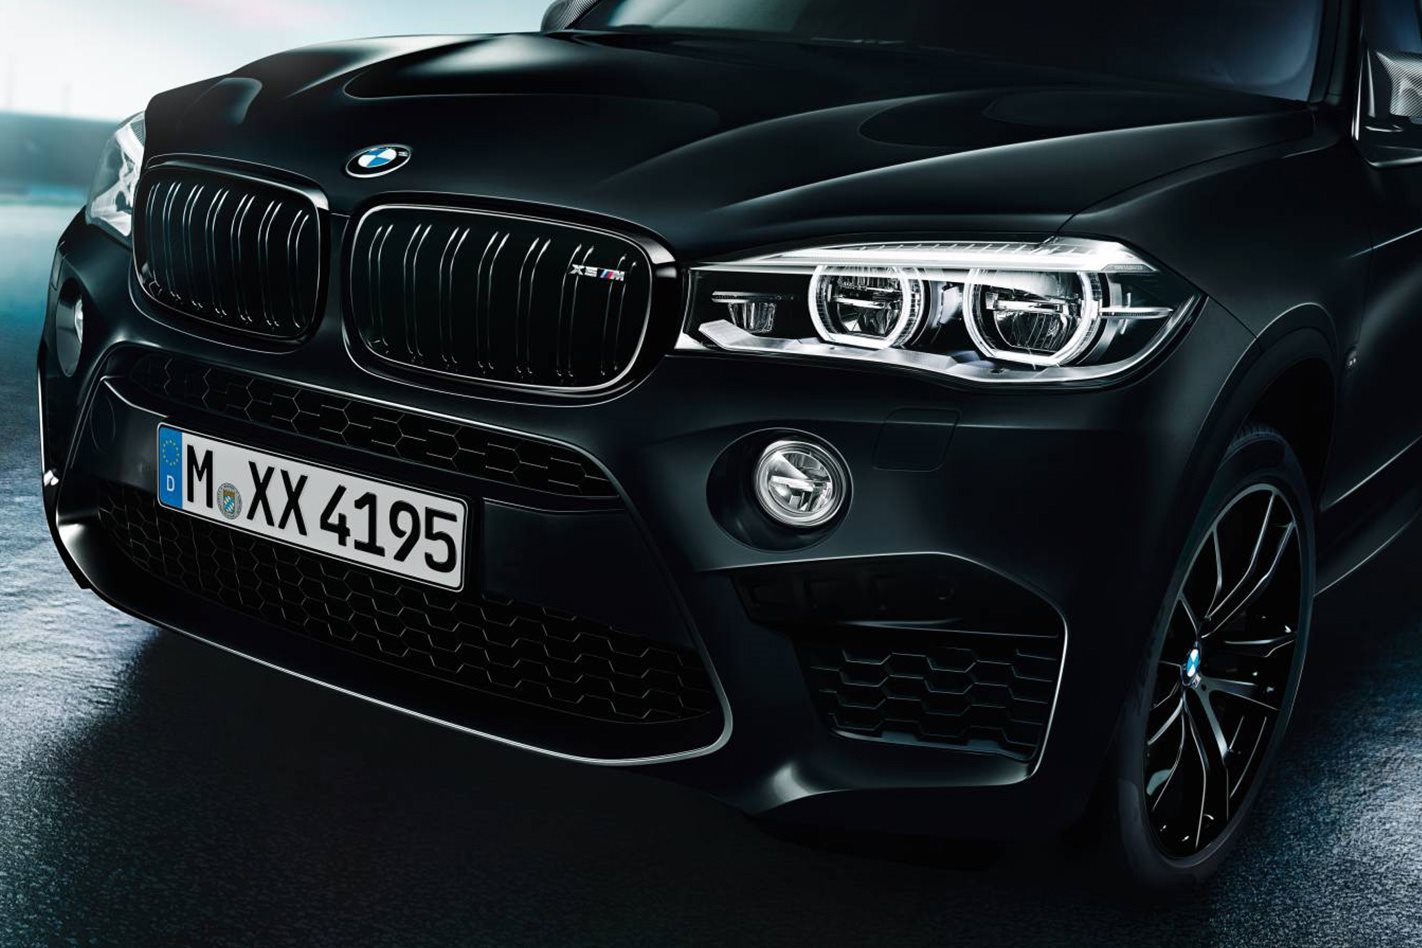 BMW X5 M and X6 M Black Fire Editions front